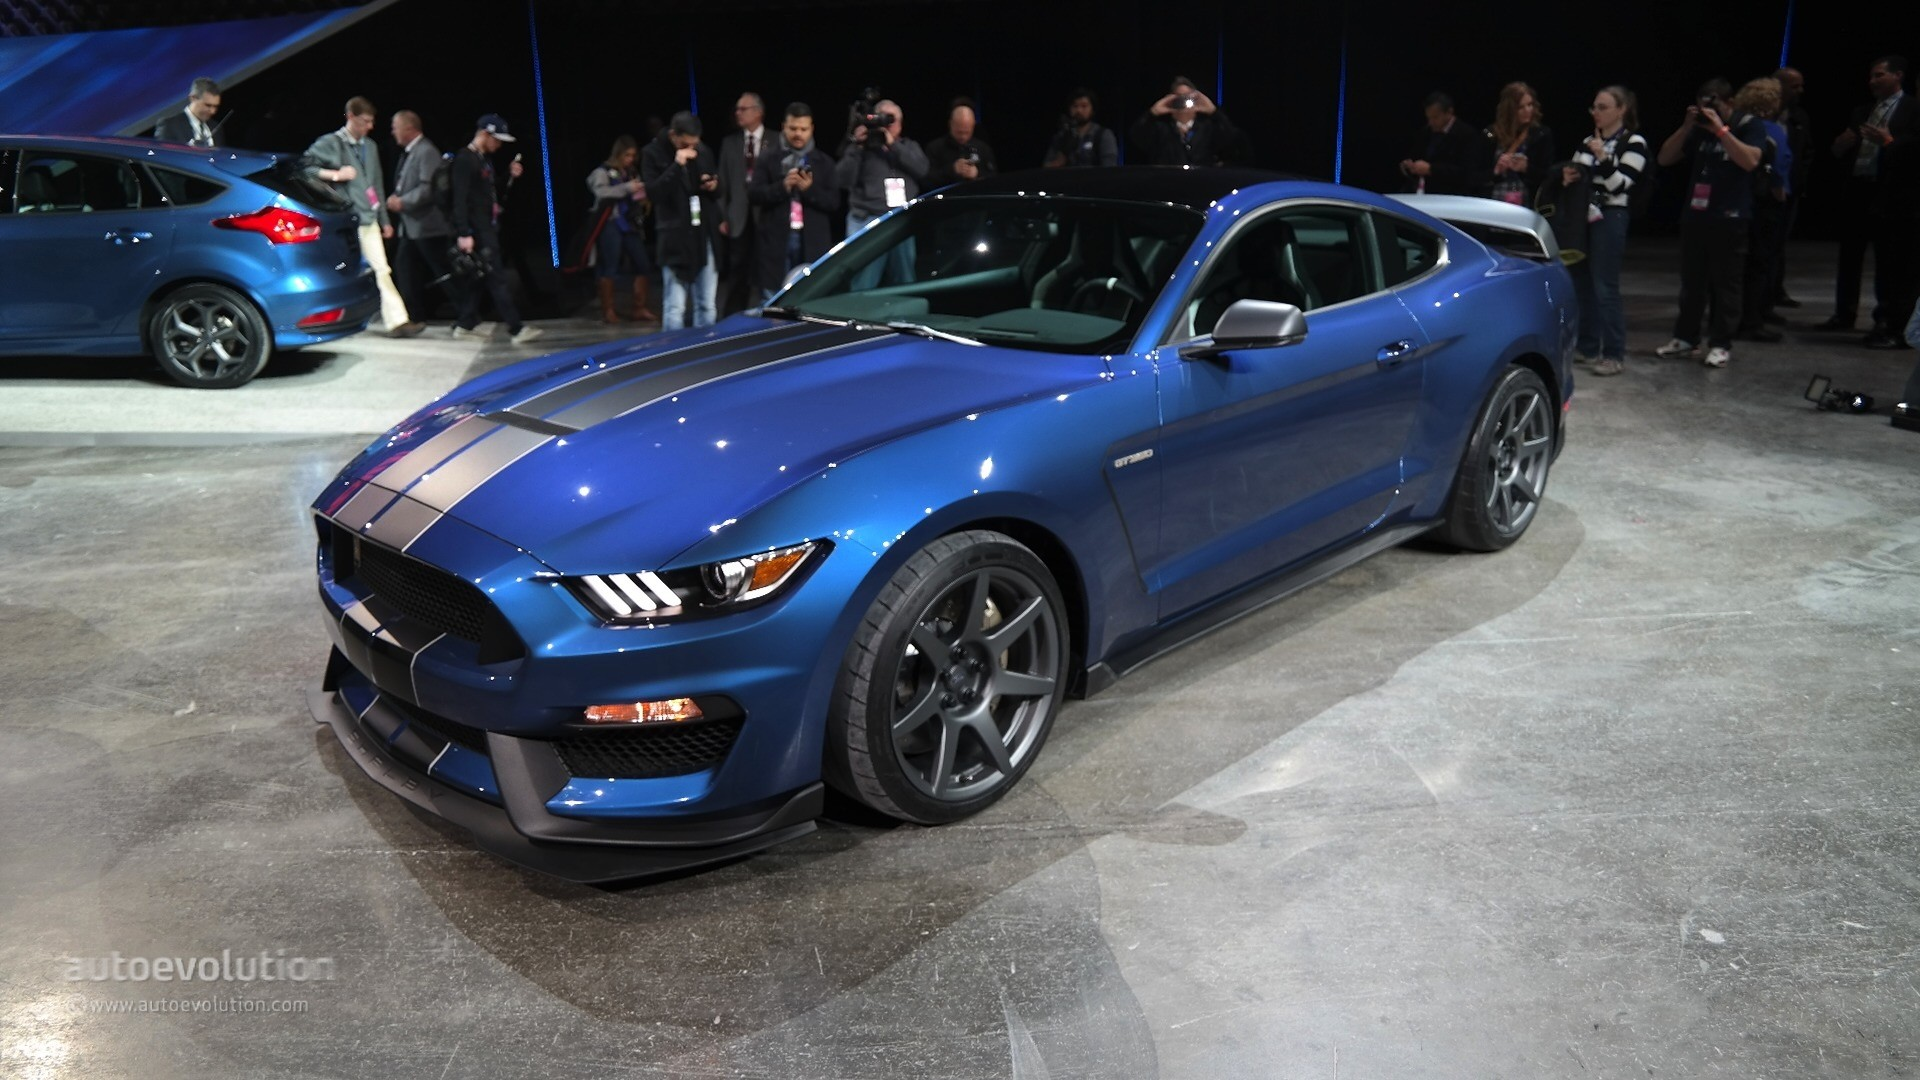 New Shelby Gt350r Mustang Unveiled In Detroit With Burnout